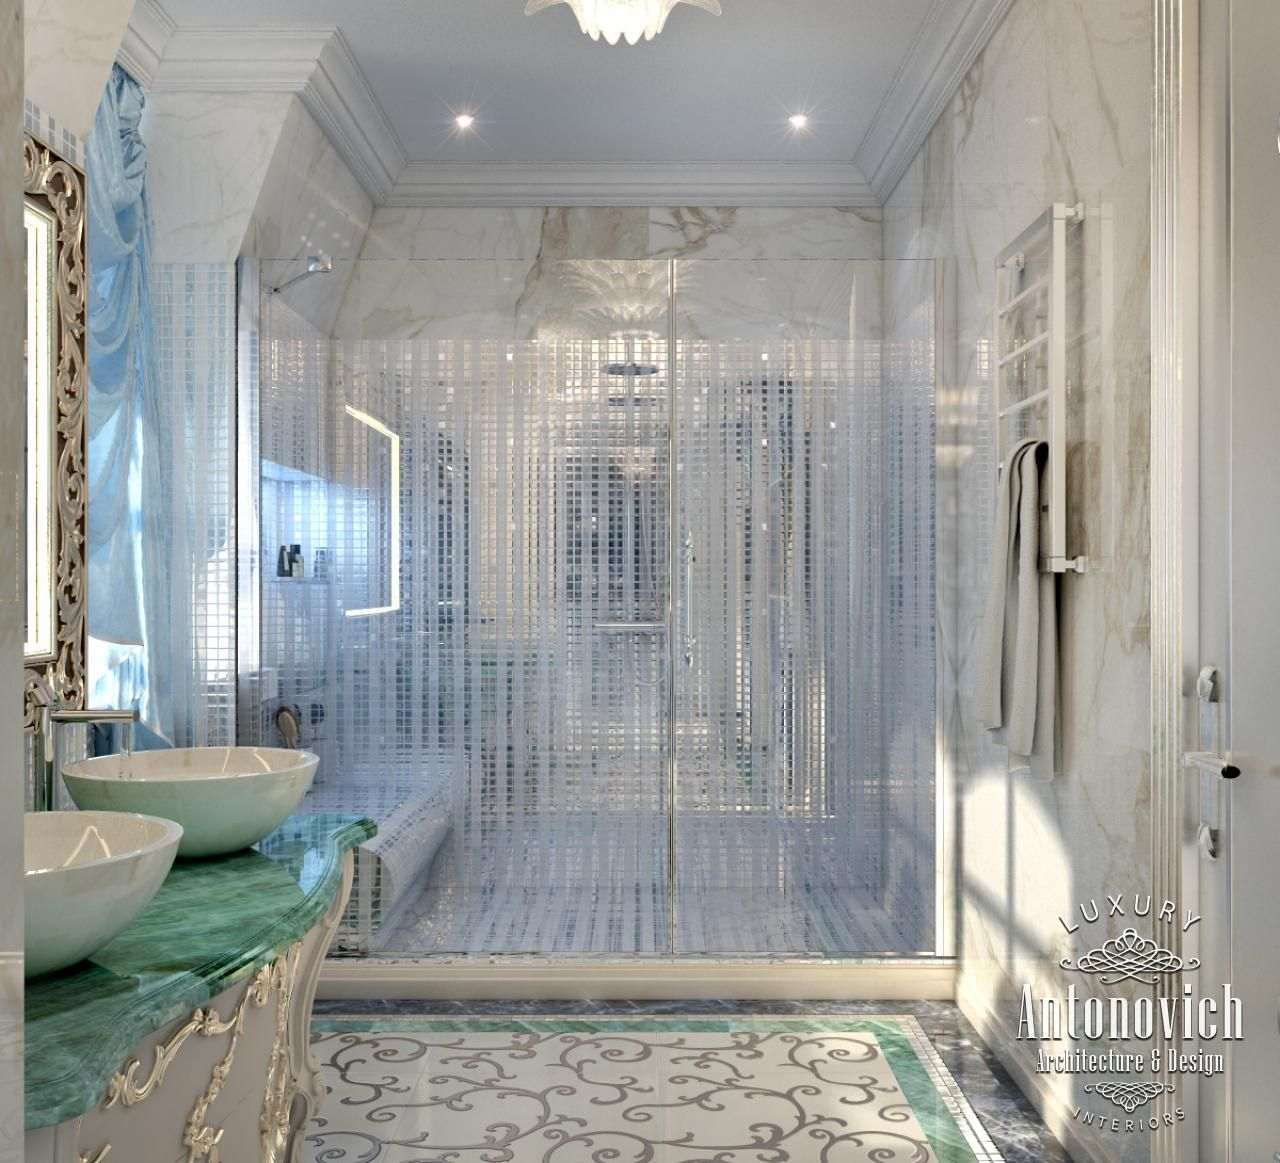 Bathroom Design In Dubai Luxury Bathroom Abu Dhabi Photo